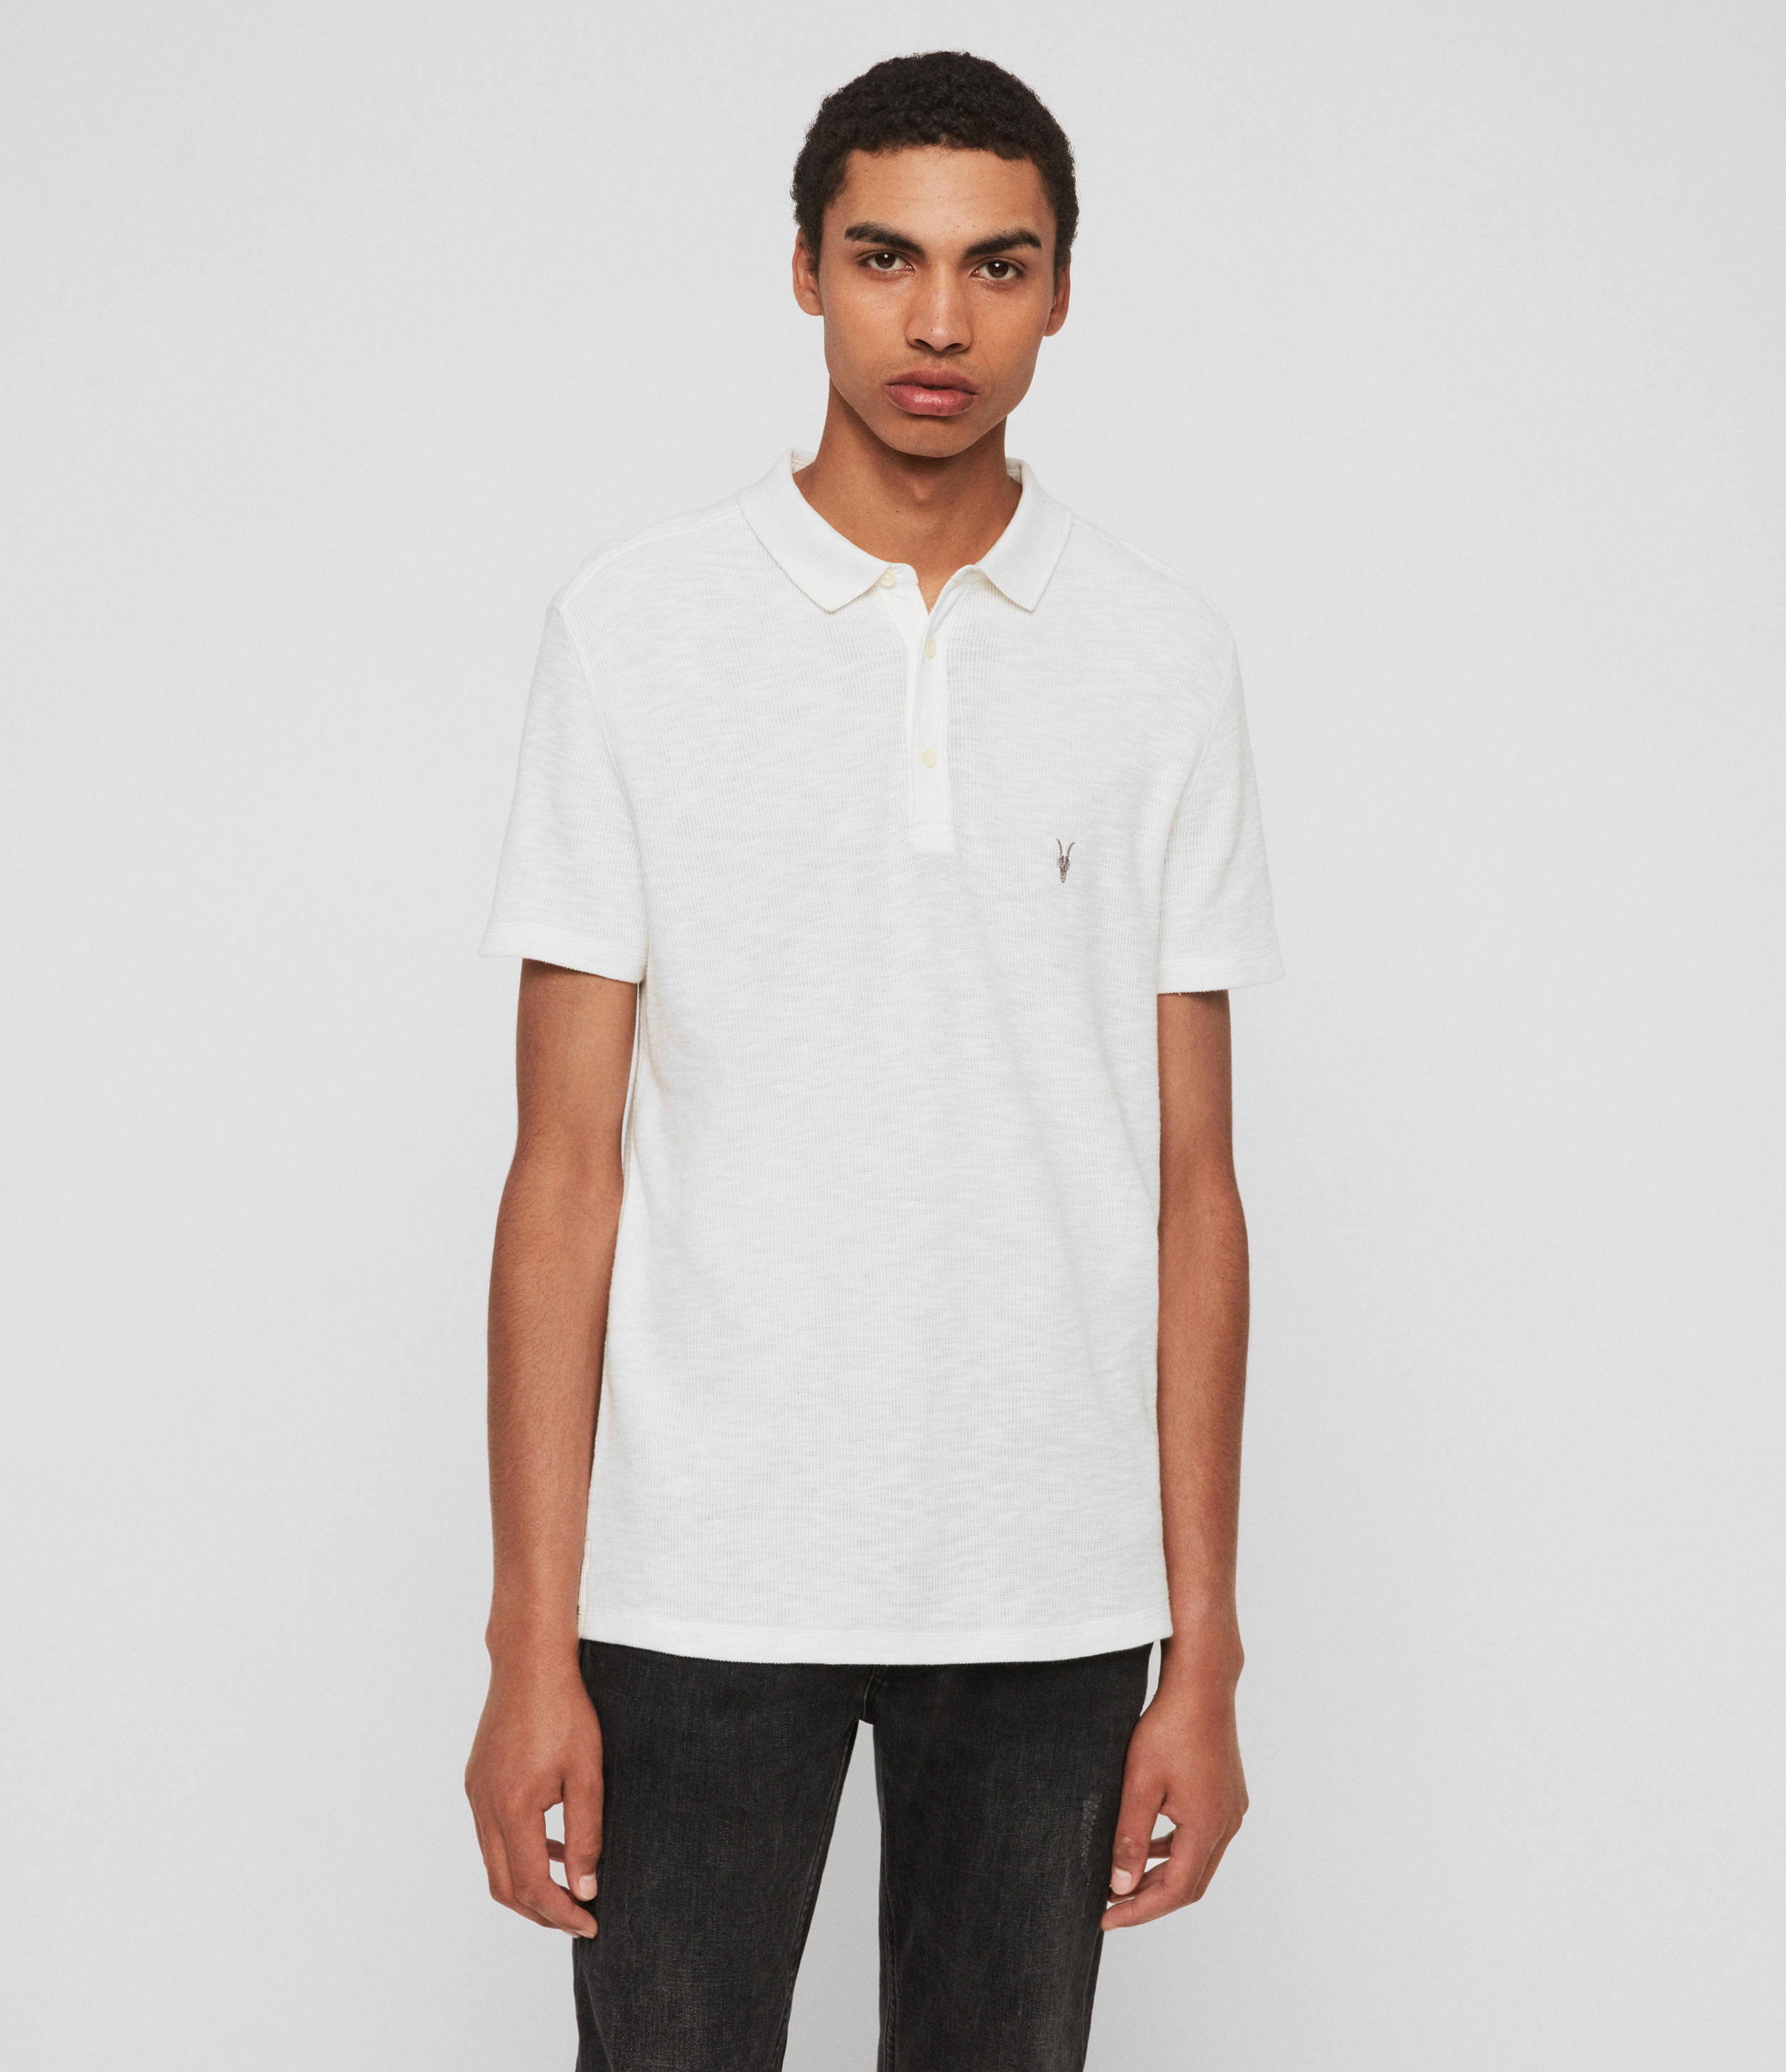 AllSaints Muse Short Sleeve Polo Shirt